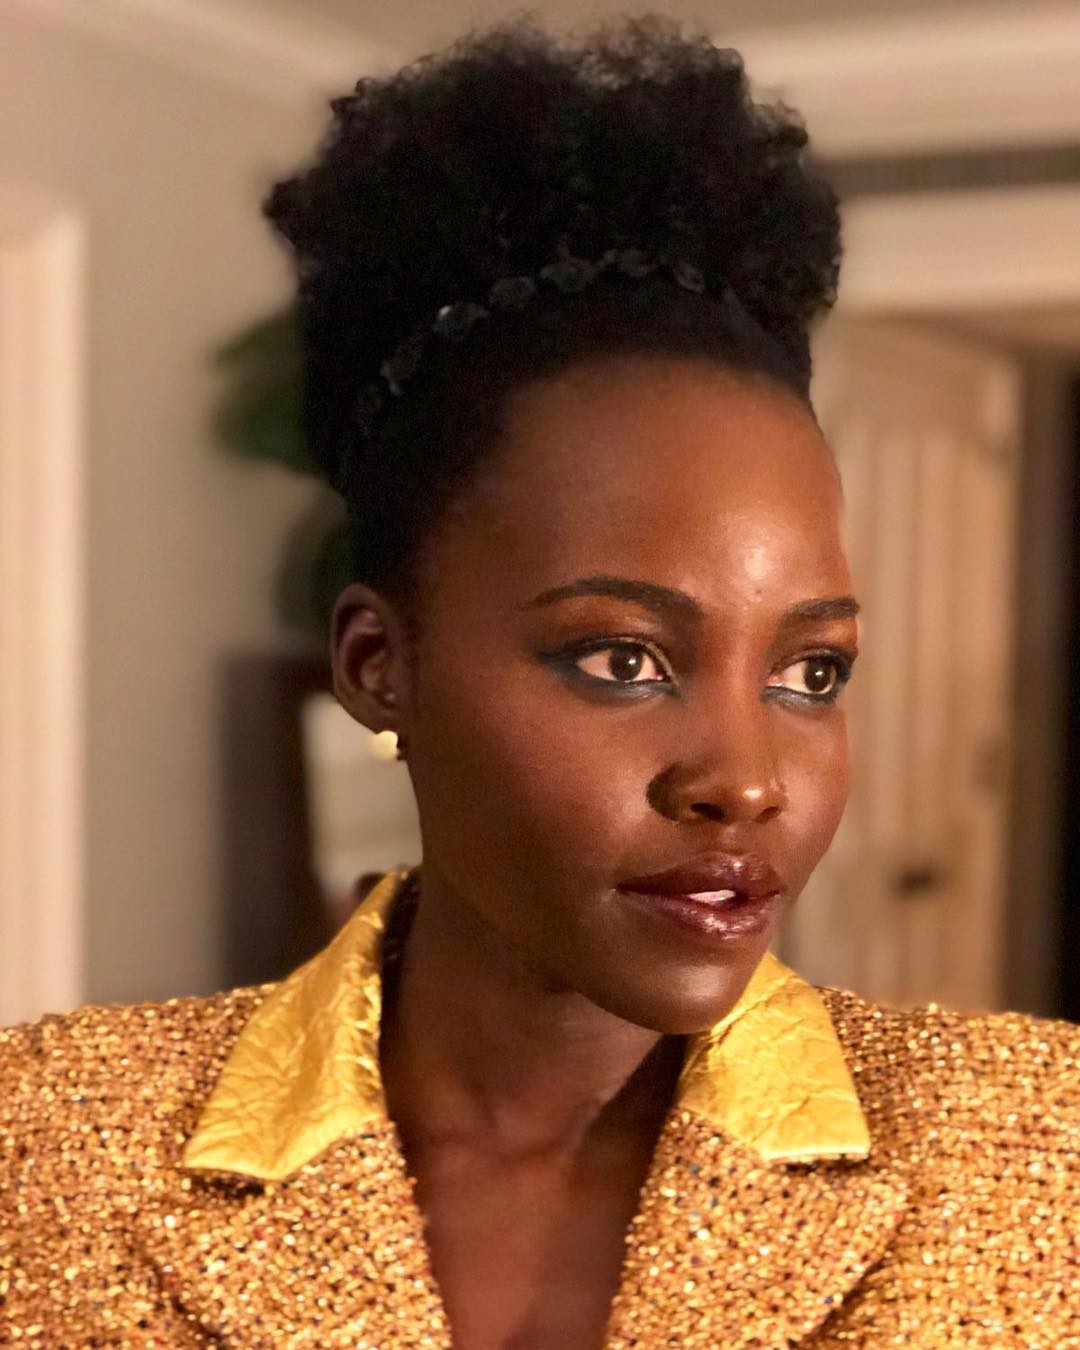 lupita two - Nyako maber! Check out different hair styles that Lupita has rocked (PHOTOS)